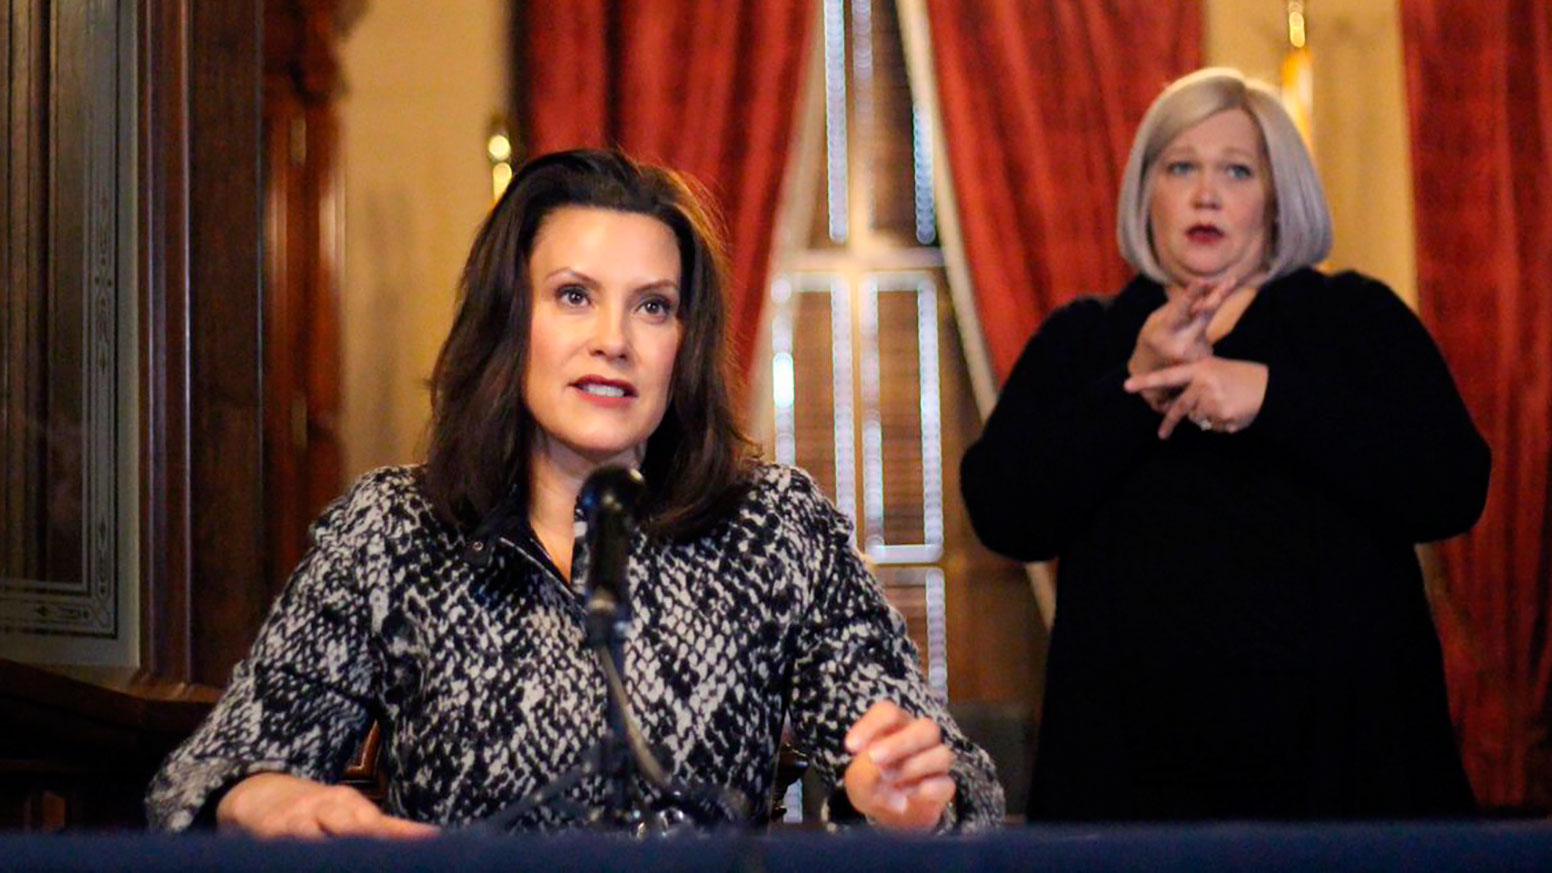 Michigan Gov. Gretchen Whitmer addresses the state during a speech in Lansing, Michigan on April 13.